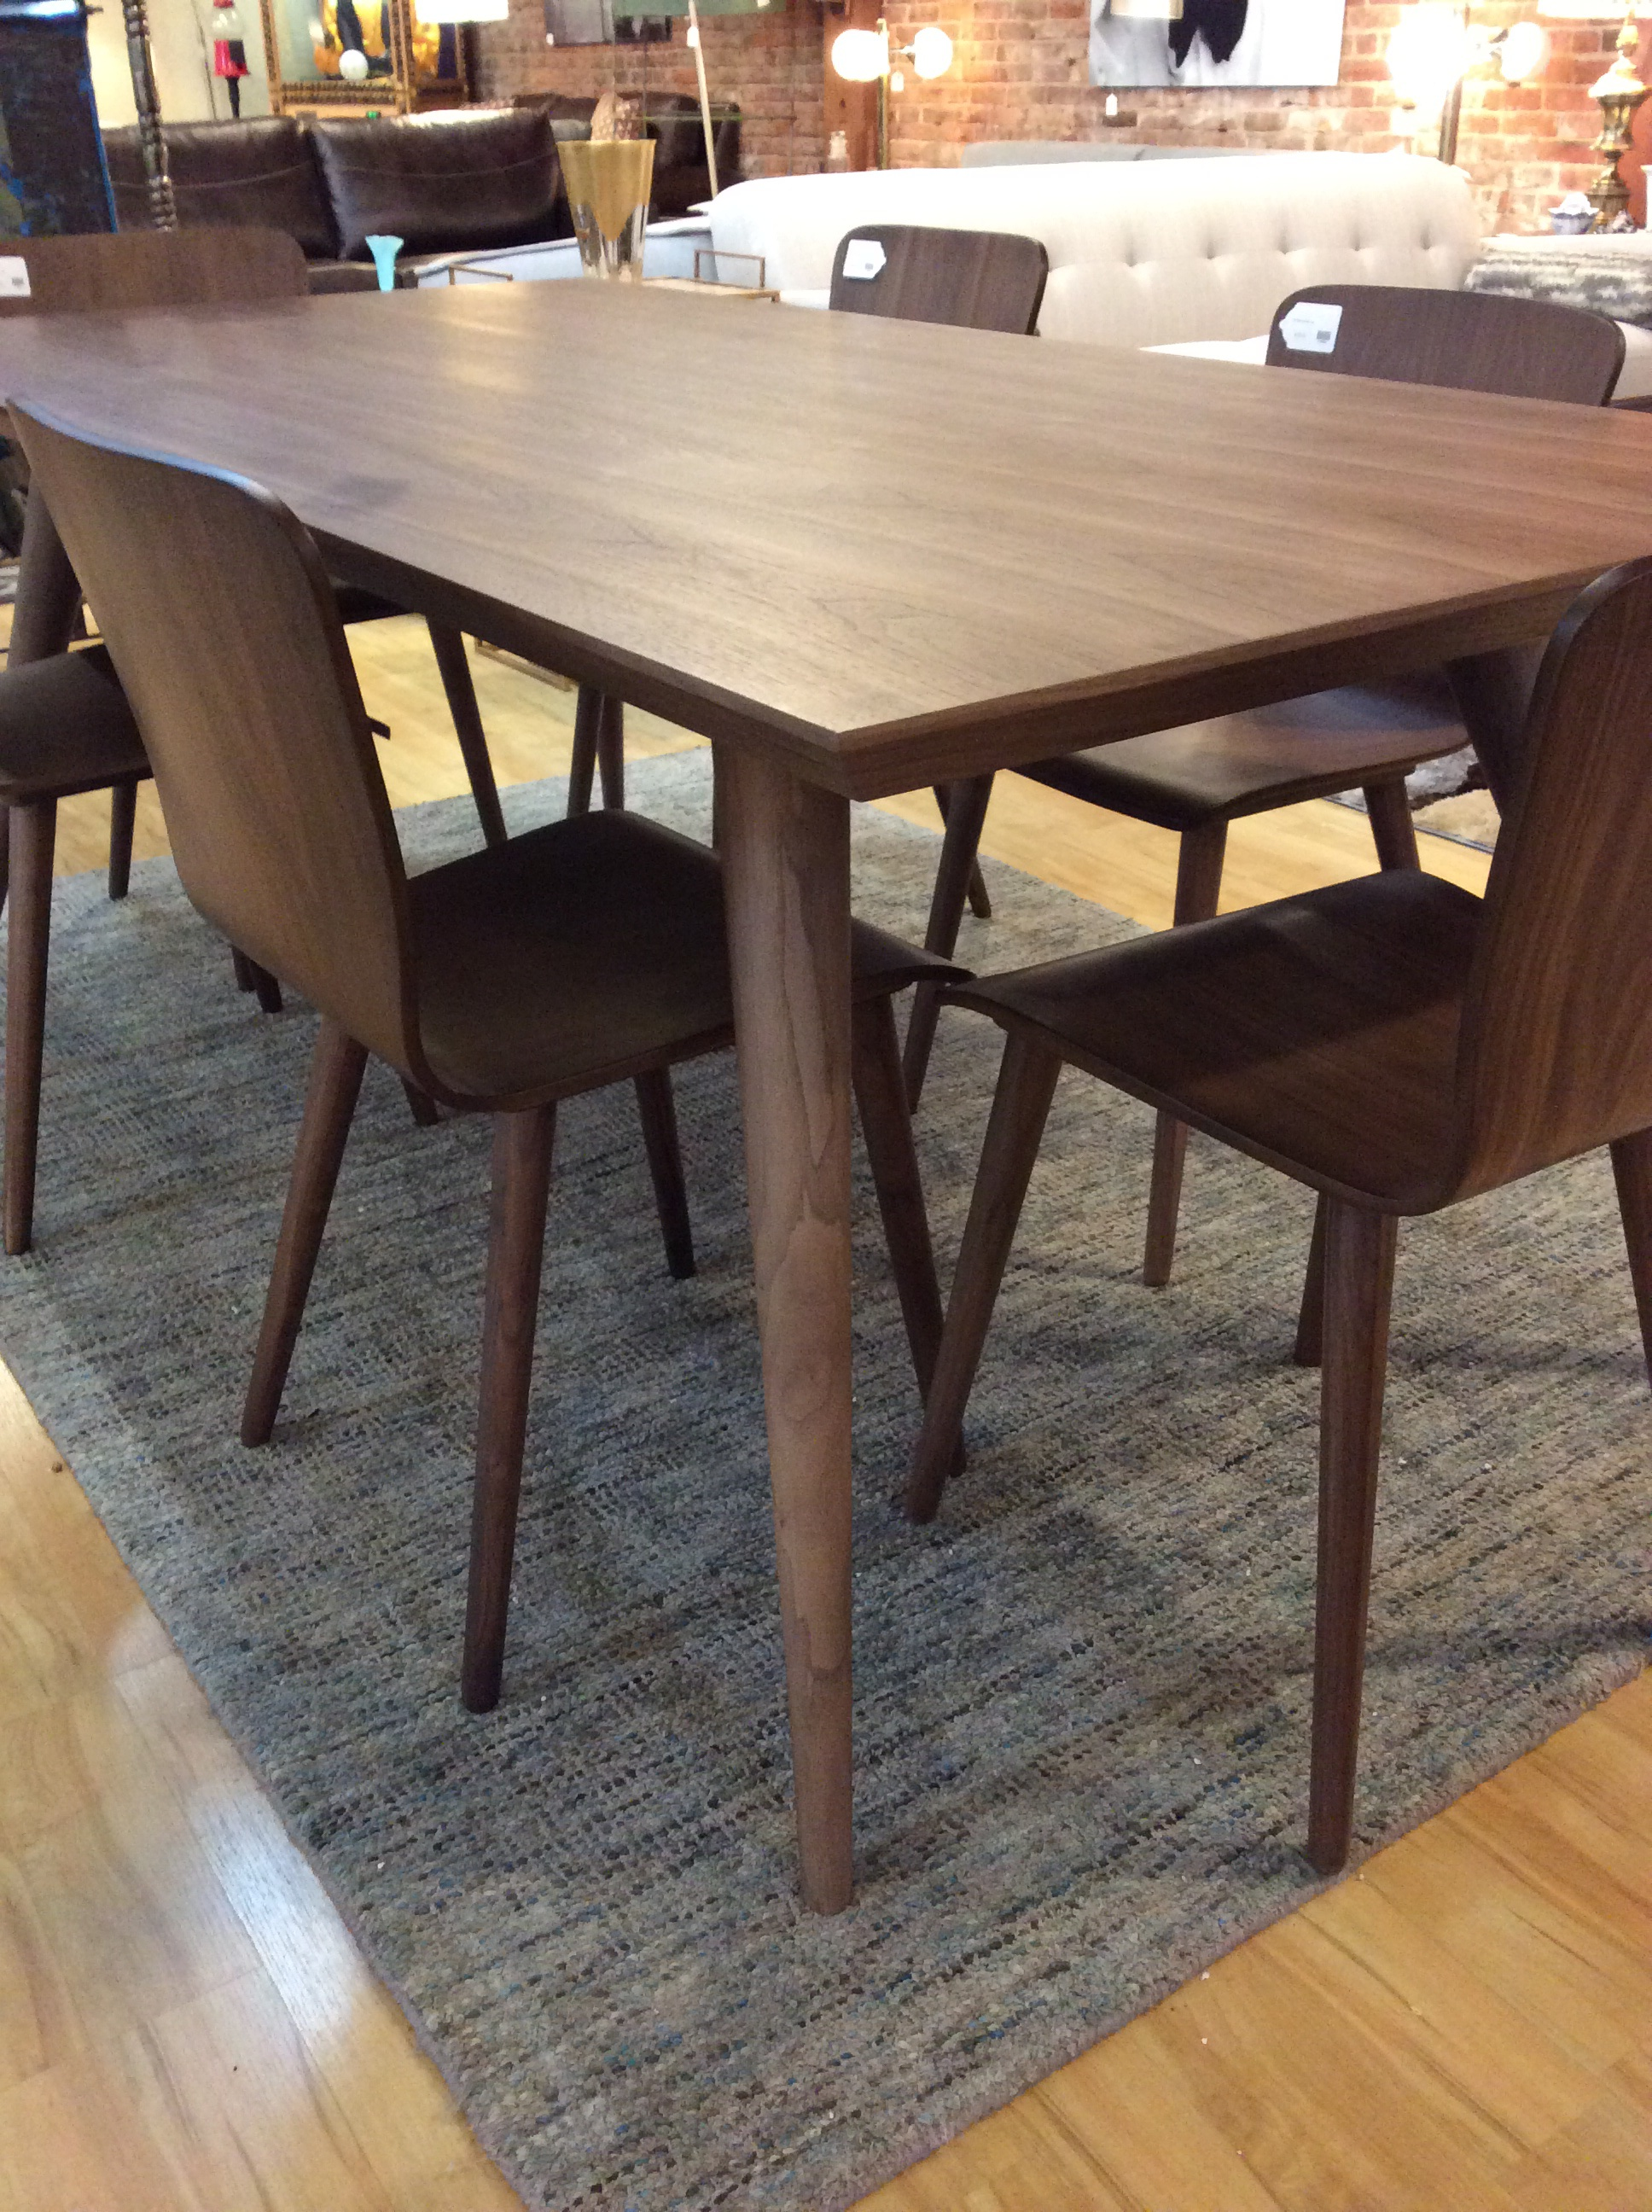 Furniture Consignment Seattle Area When Referring To This Item Refer To Item 92913 Office